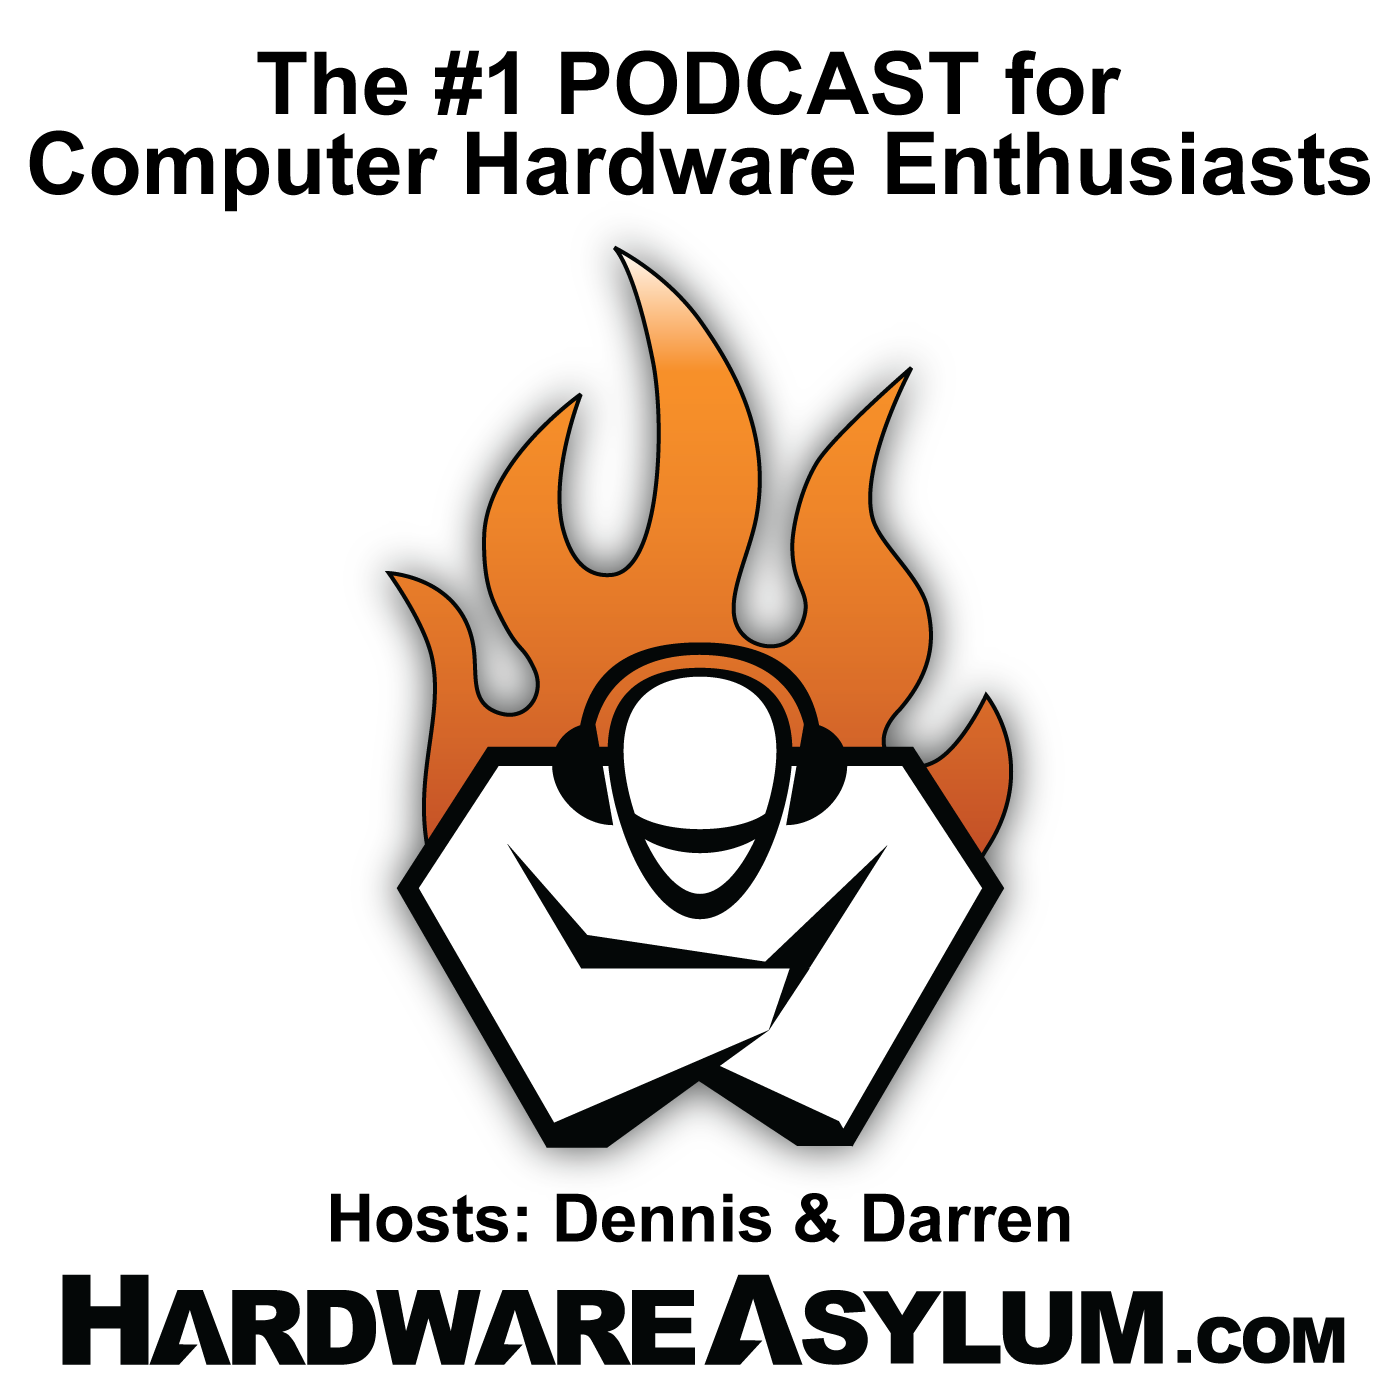 The Hardware Asylum Podcast